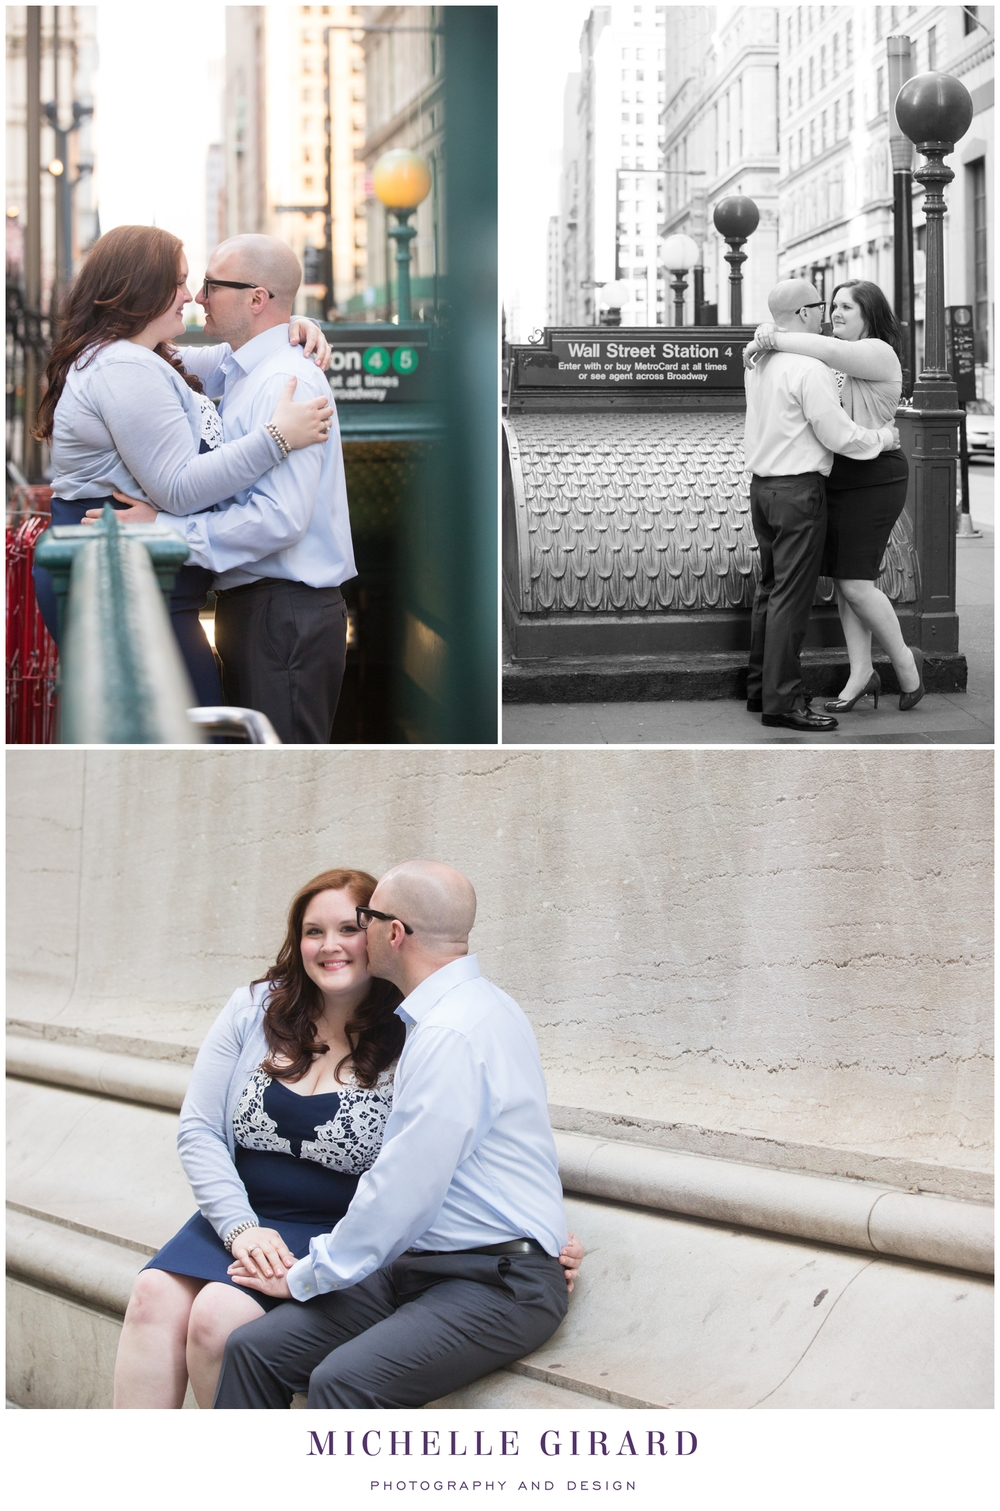 NewYorkCityEngagementSession_FinancialDistrict_MichelleGirardPhotography07.jpg